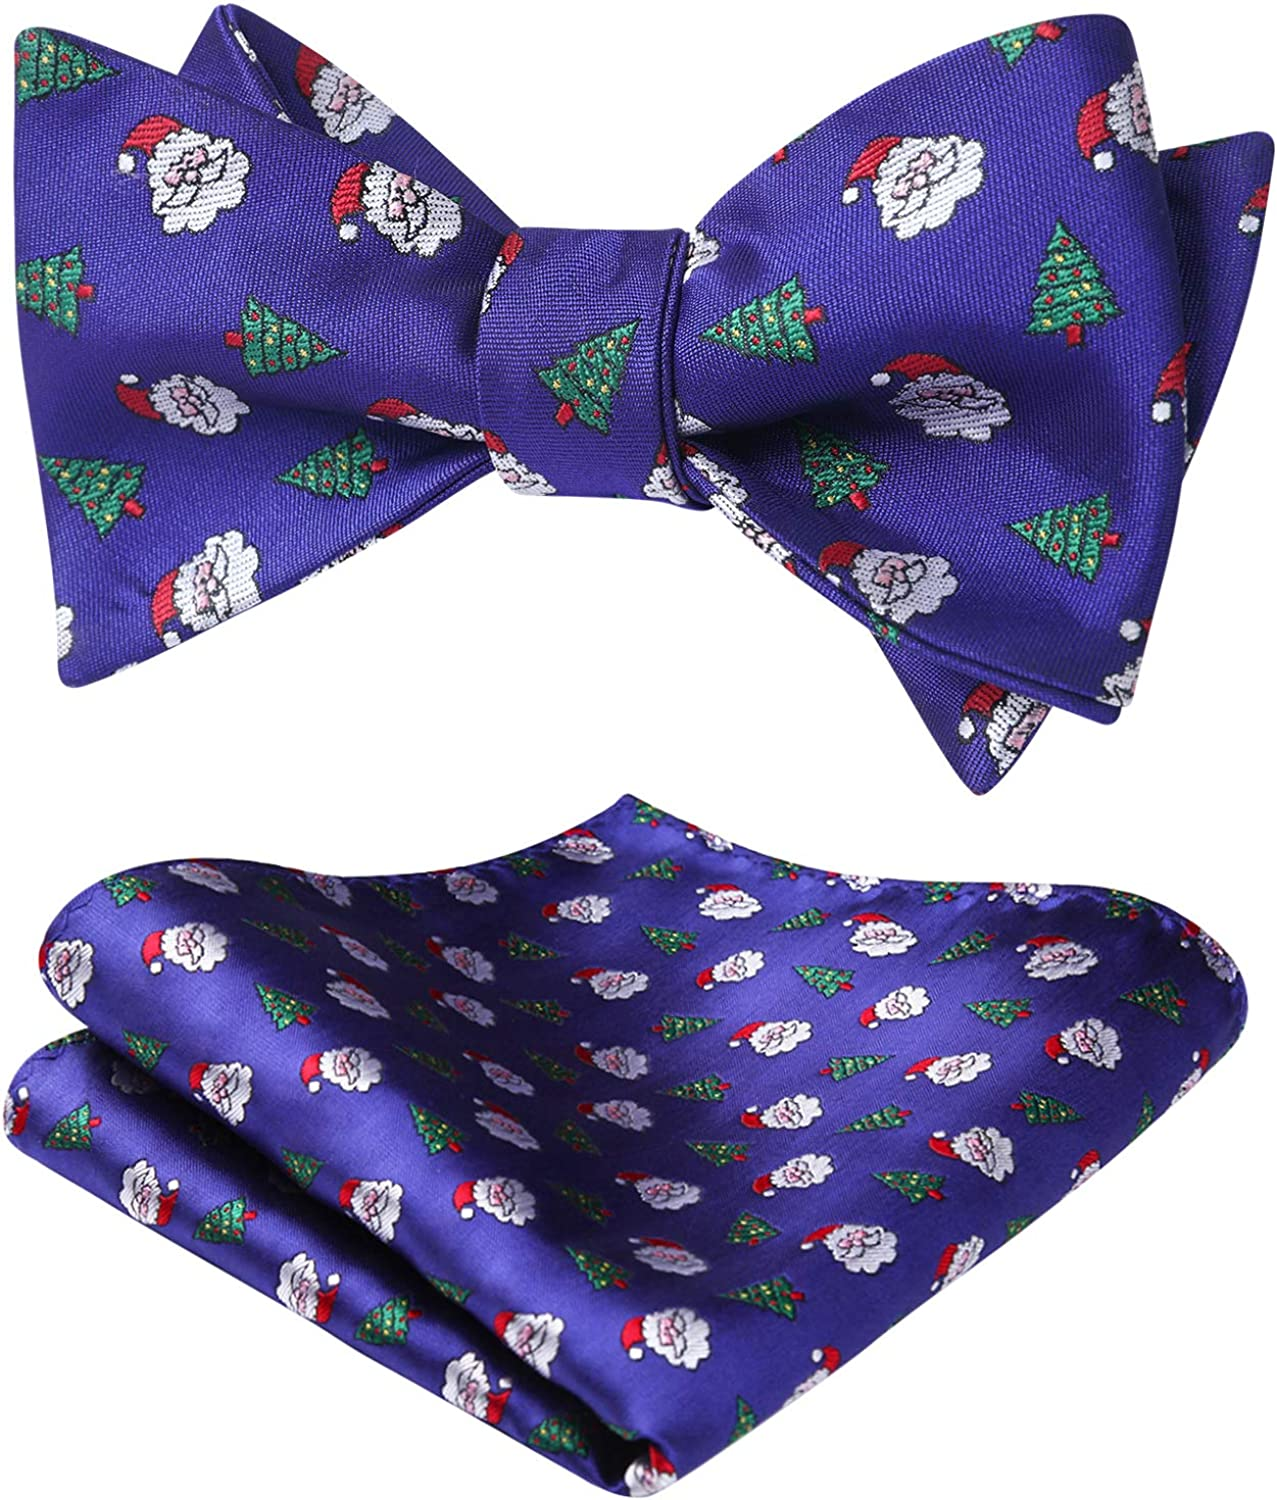 HISDERN Christmas Bow Tie for Men Festival Theme Pattern Self Tied Bow Ties & Pocket Square Handkerchief Set Party Holiday